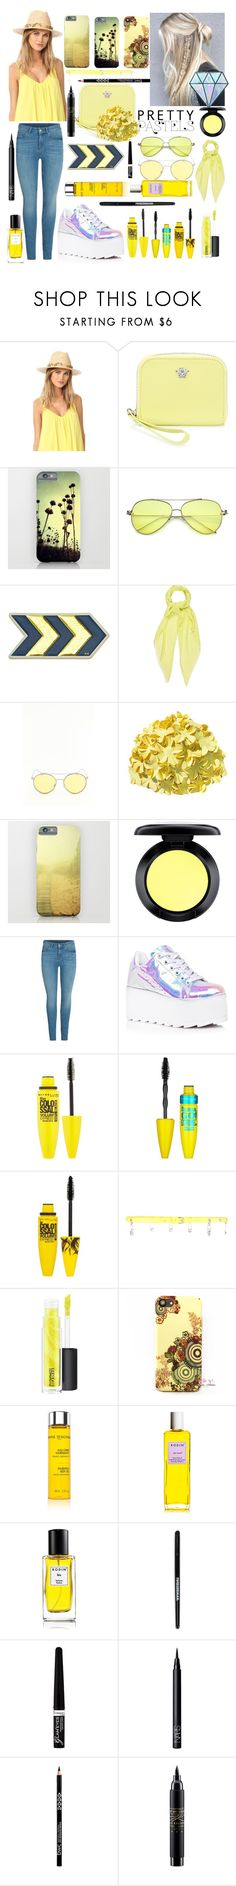 """📁"" by georgyana7770 ❤ liked on Polyvore featuring Hat Attack, Versace, Anya Hindmarch, Chan Luu, MAC Cosmetics, Y.R.U., Maybelline, Versus, Anne Semonin and Rodin Olio Lusso"